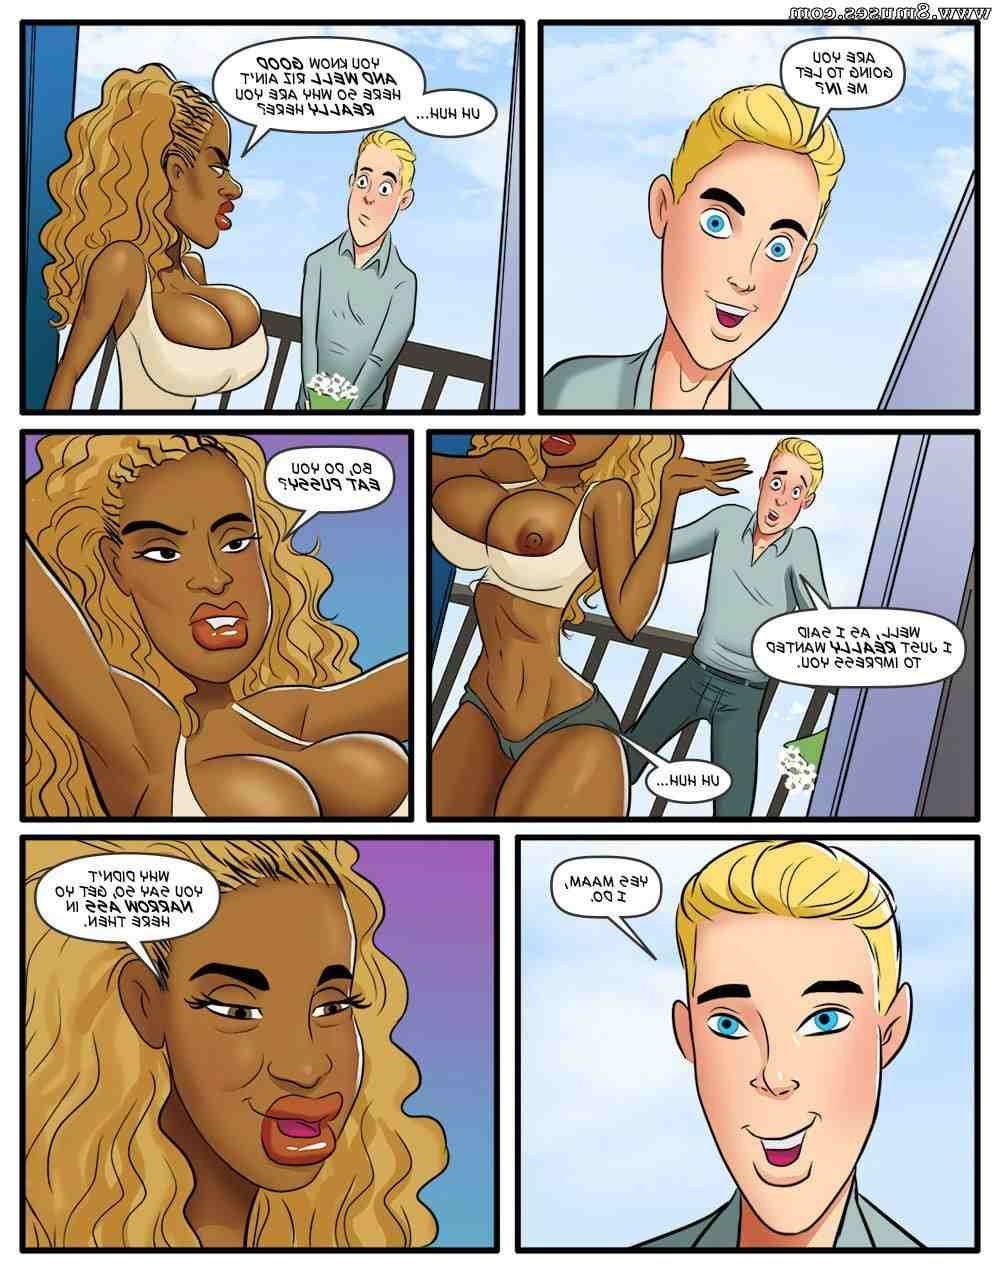 JohnPersons_com-Comics/Moose/The-Milf-Pact The_Milf_Pact__8muses_-_Sex_and_Porn_Comics_10.jpg